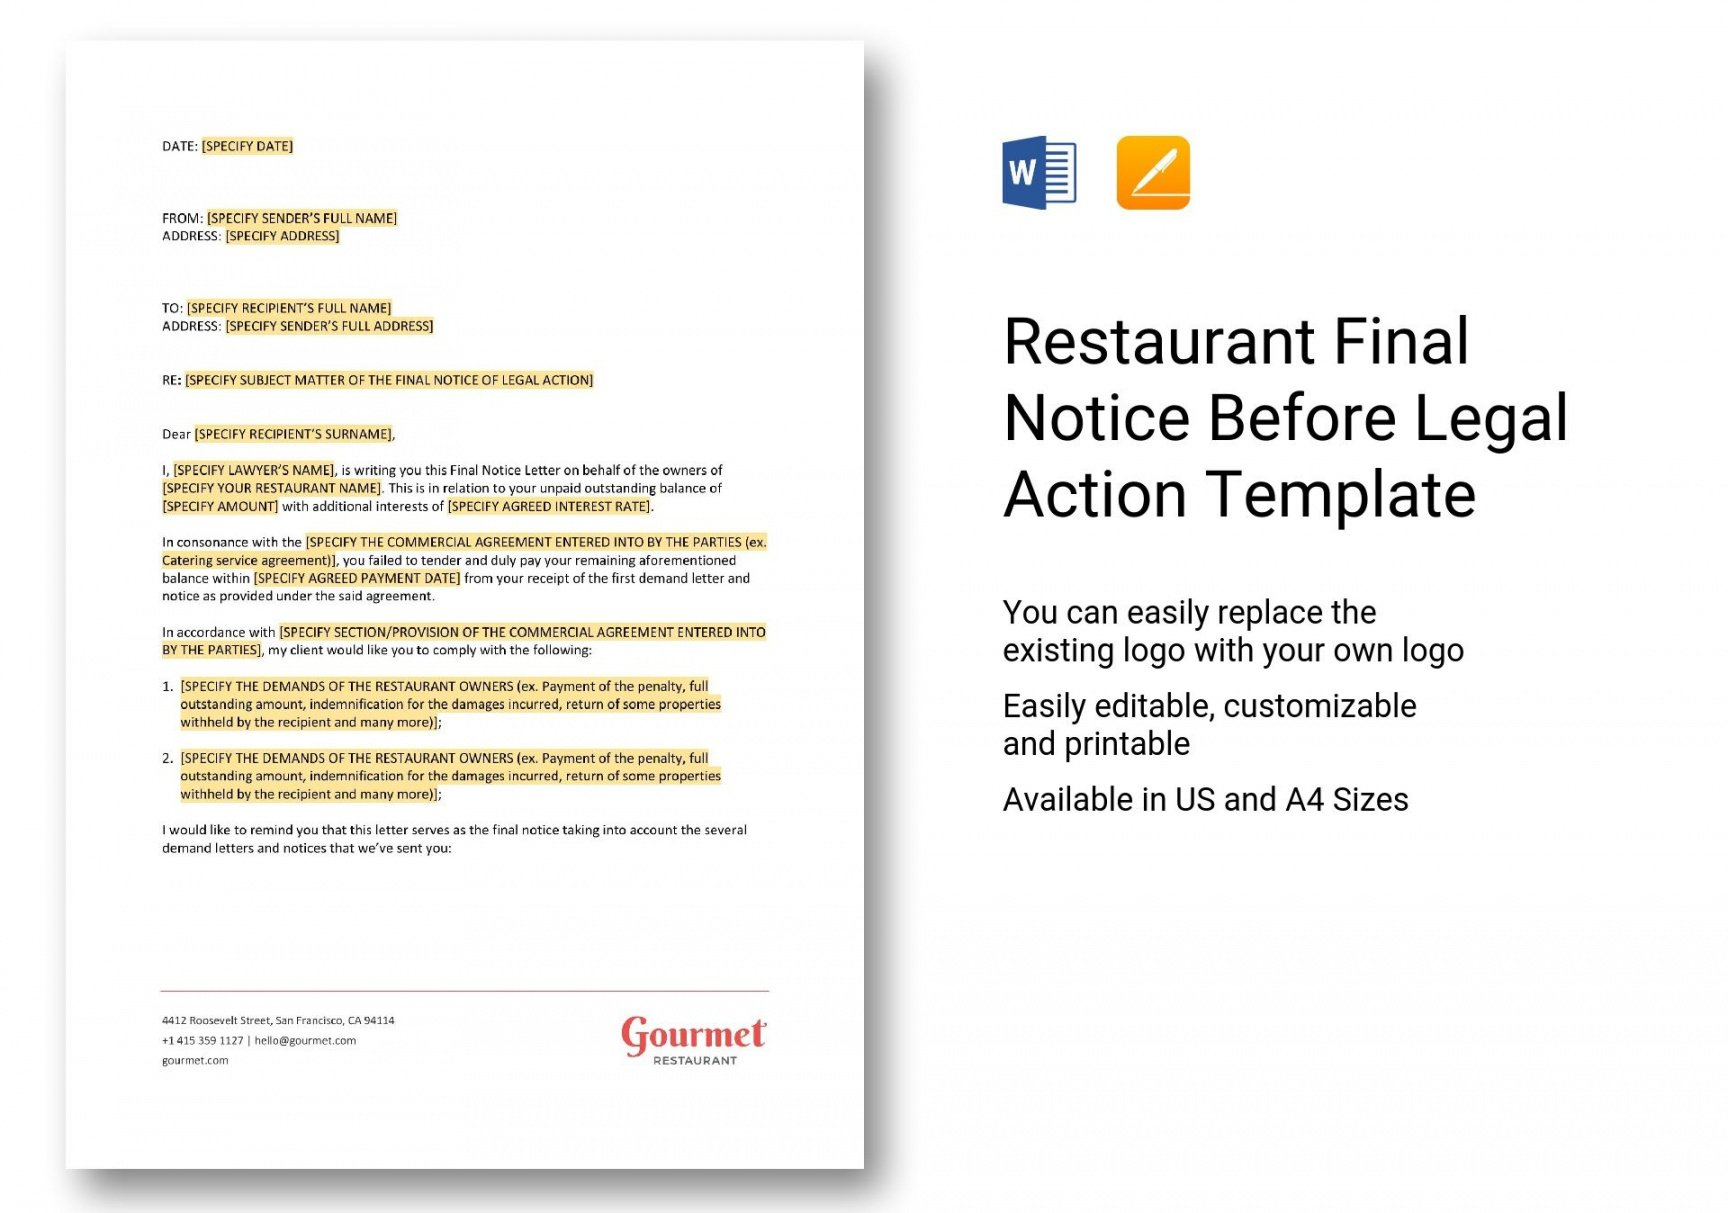 costume restaurant final notice before legal action template in word apple legal notice template sample